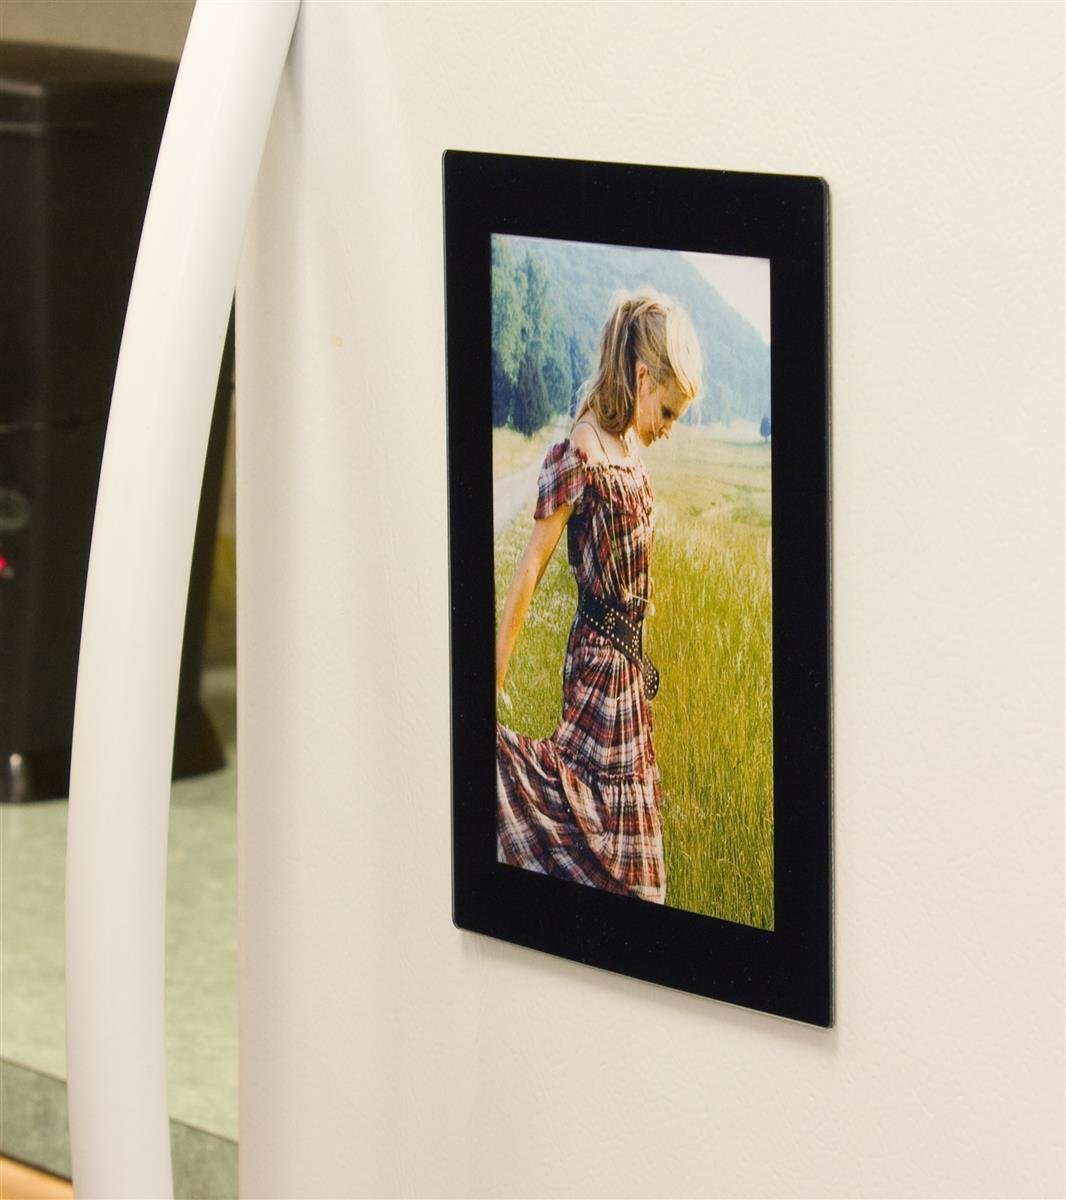 Displays2go Set of 10, Magnetic Refrigerator Photo Frames for 5x7 Prints - Black Acrylic by Displays2go (Image #1)